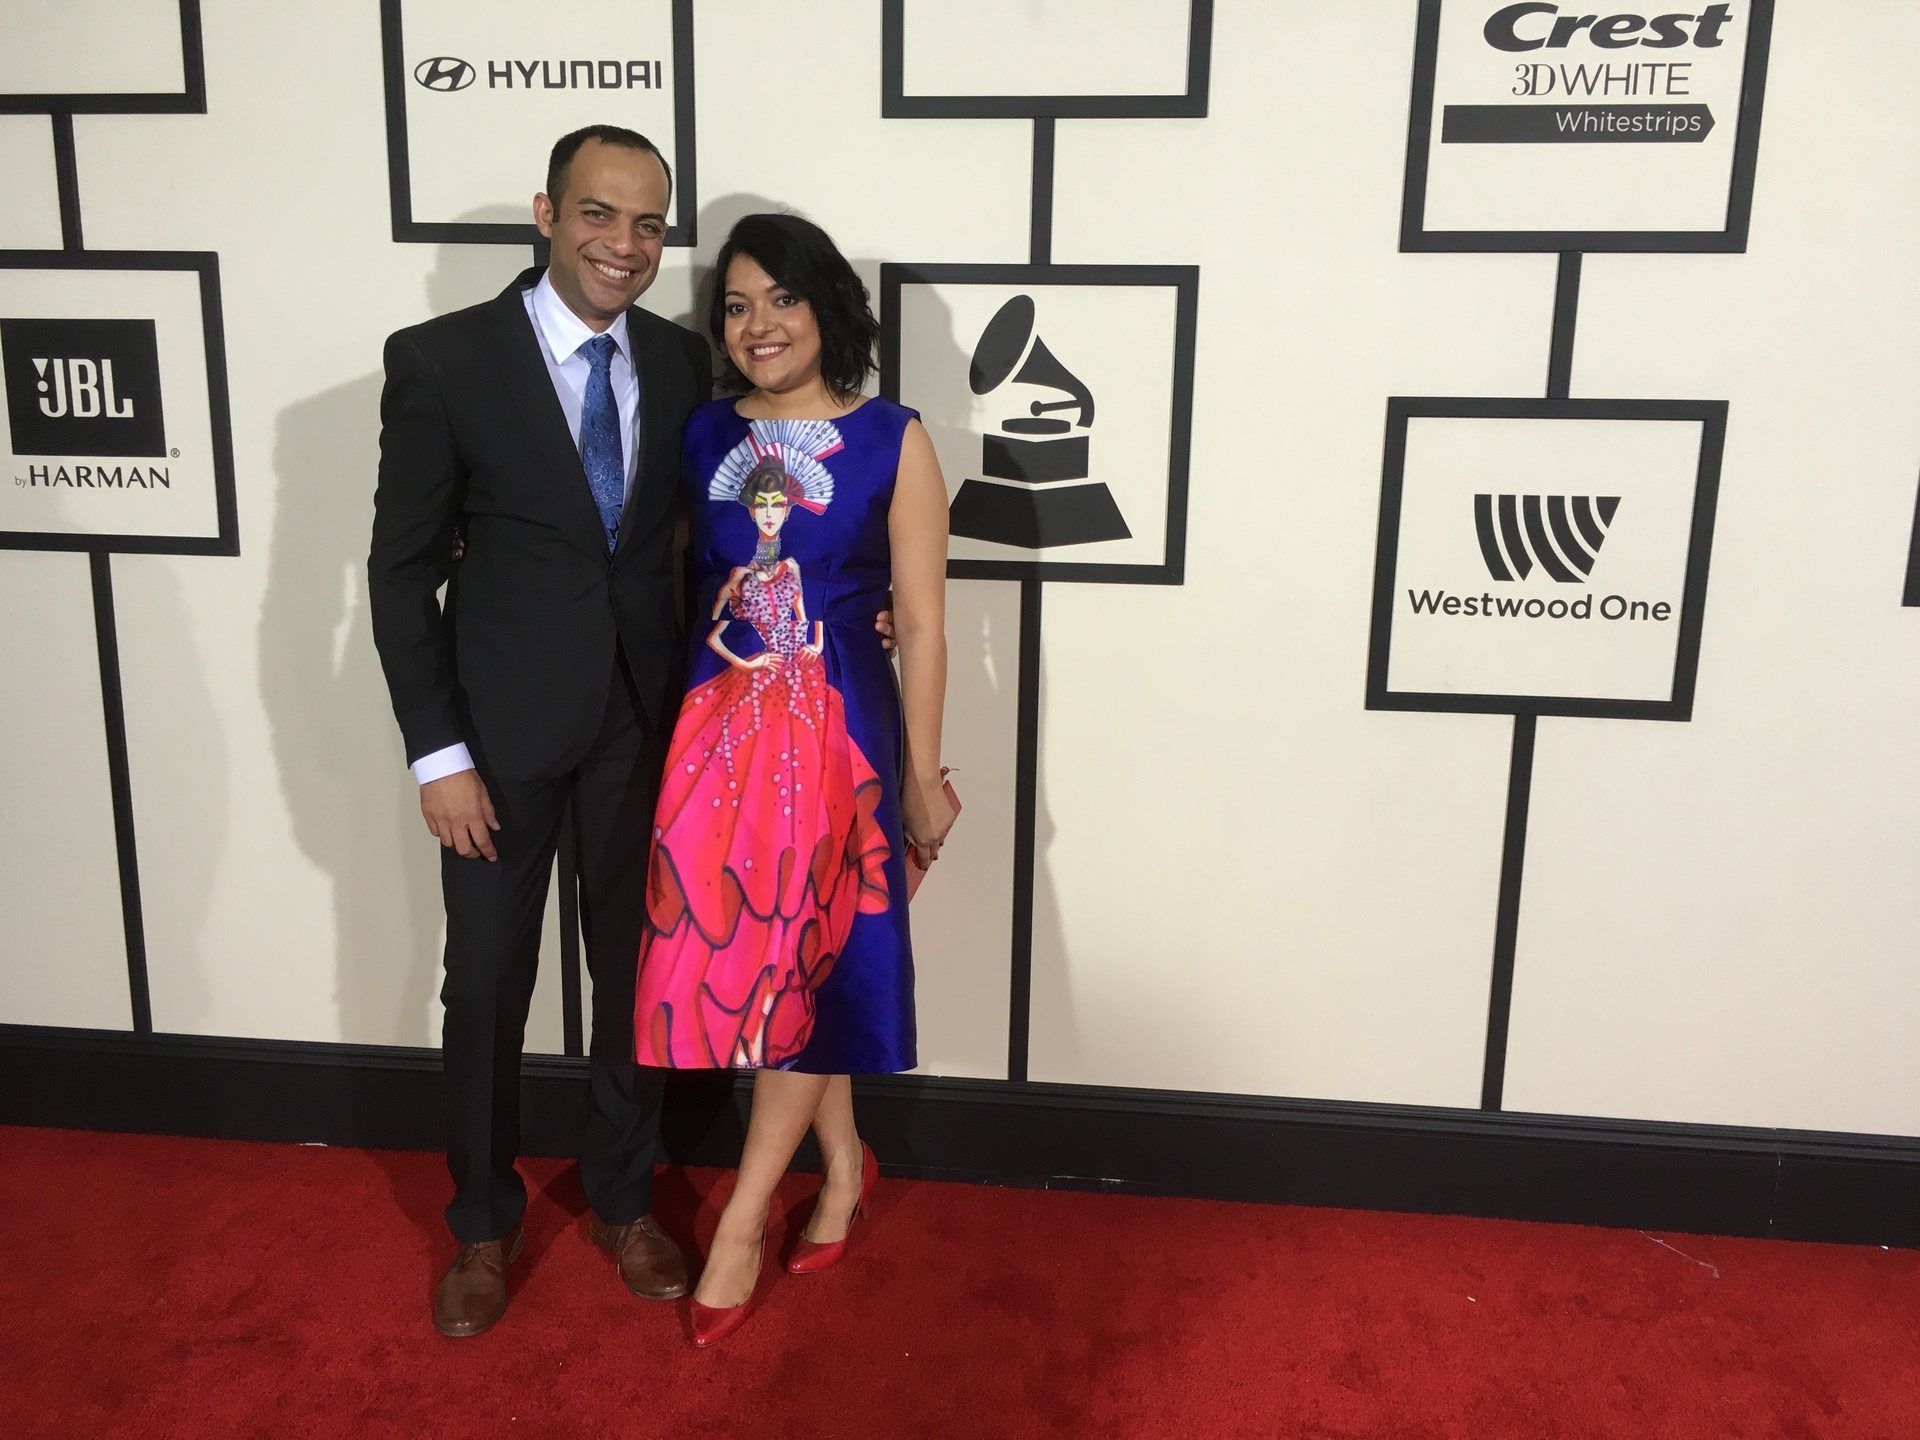 Arun Shenoy and Roshni Mohapatra attend the 58th Annual GRAMMY Awards at STAPLES Center on February 15, 2016 in Los Angeles, California.